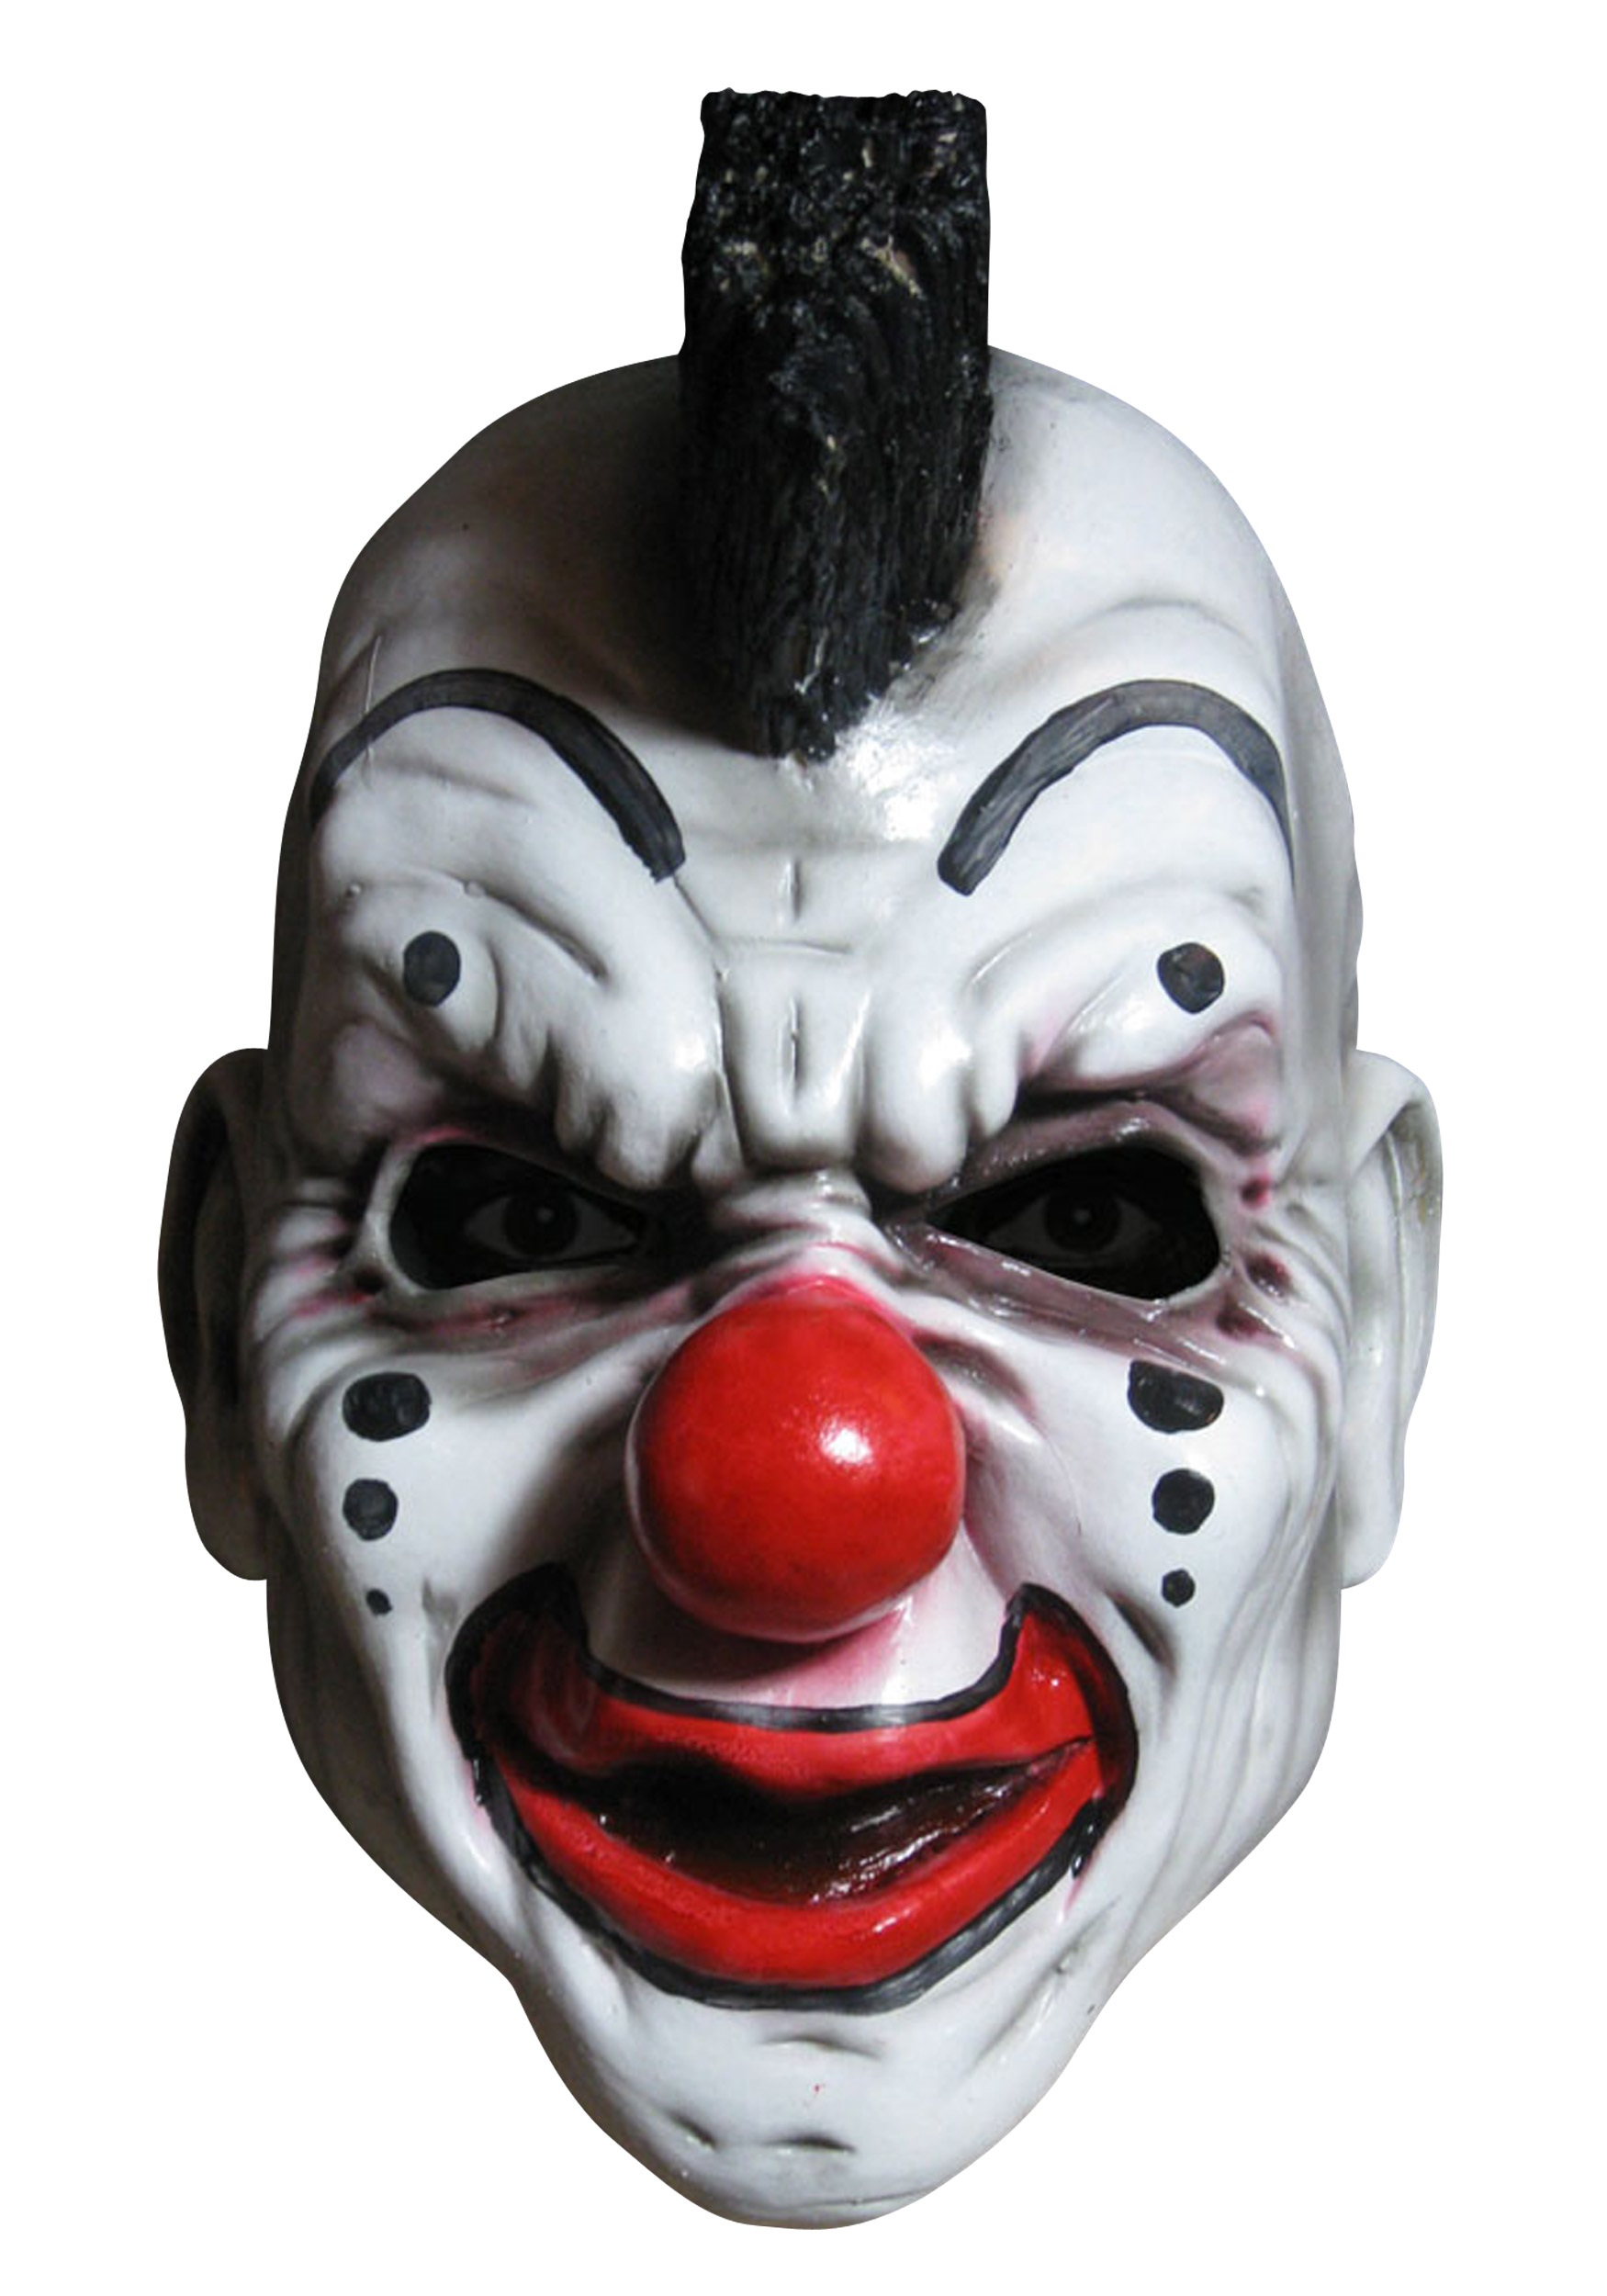 clown slipknot mask - halloween costumes